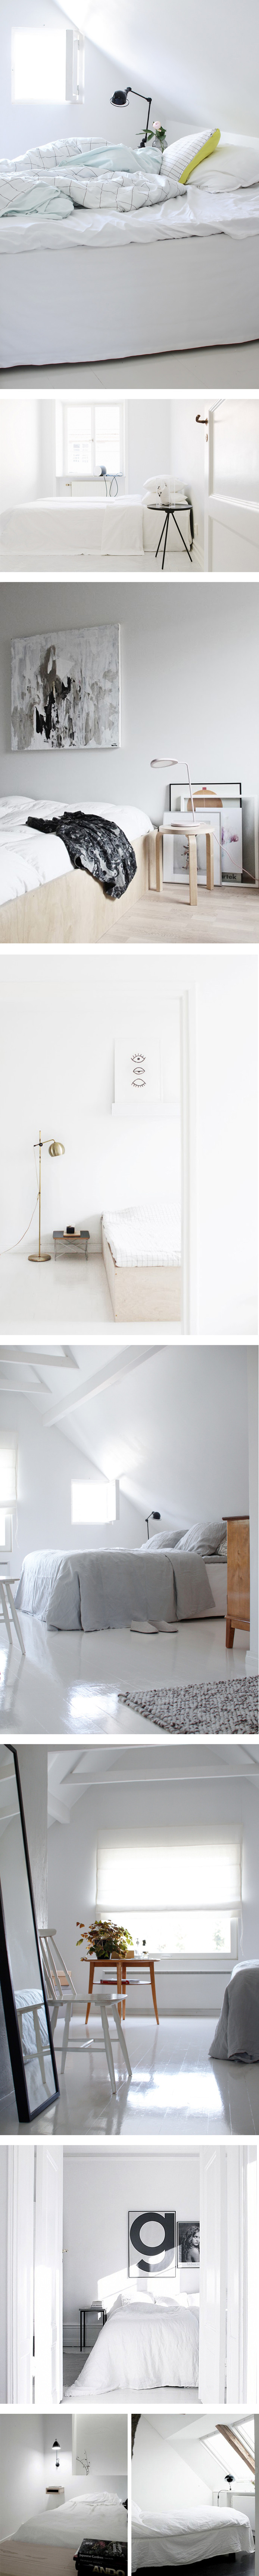 White simplicity in the bedroom space